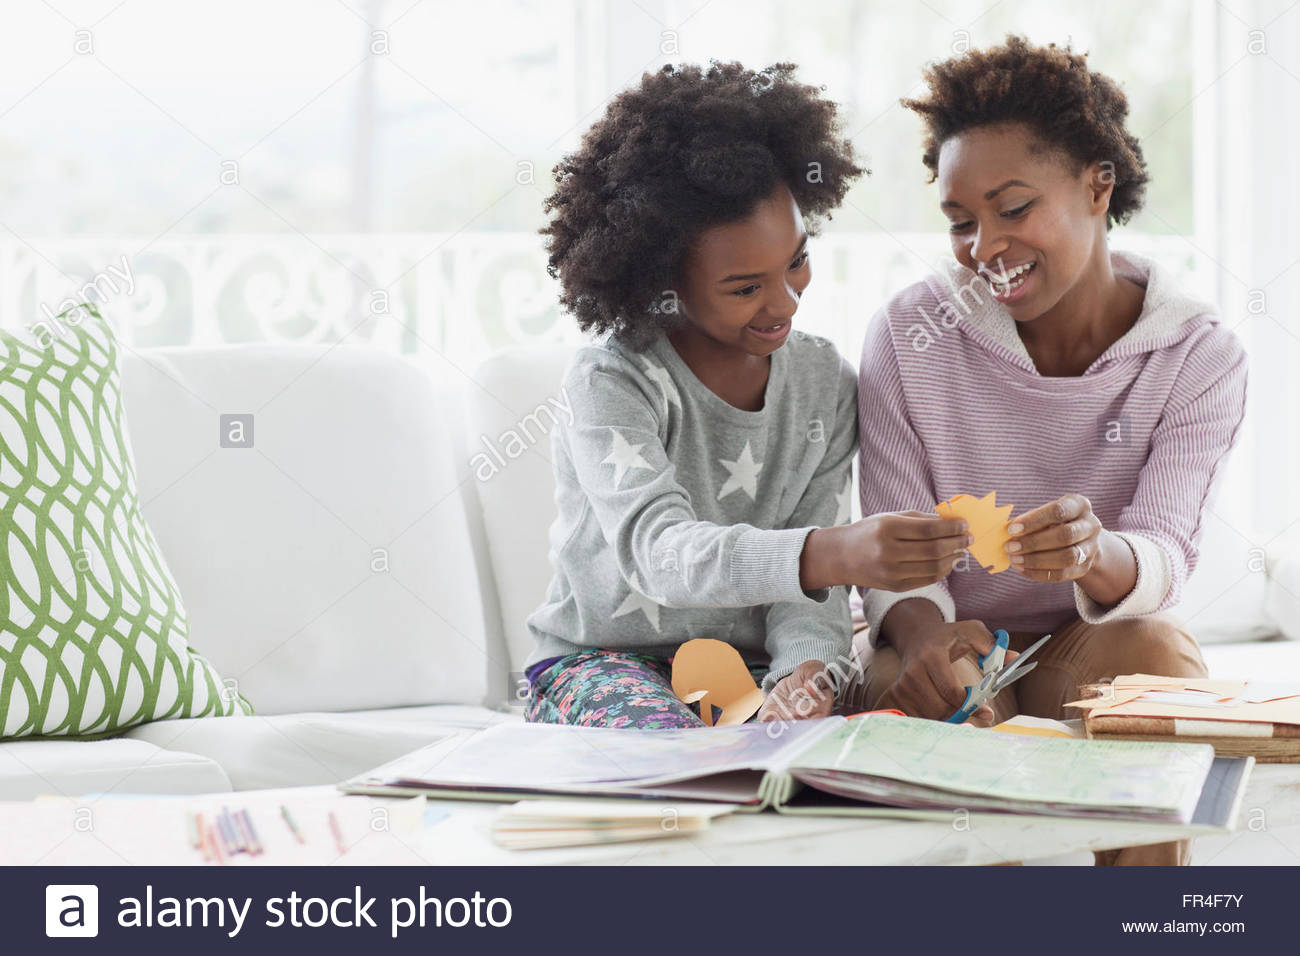 mother and daughter crafting together - Stock Image